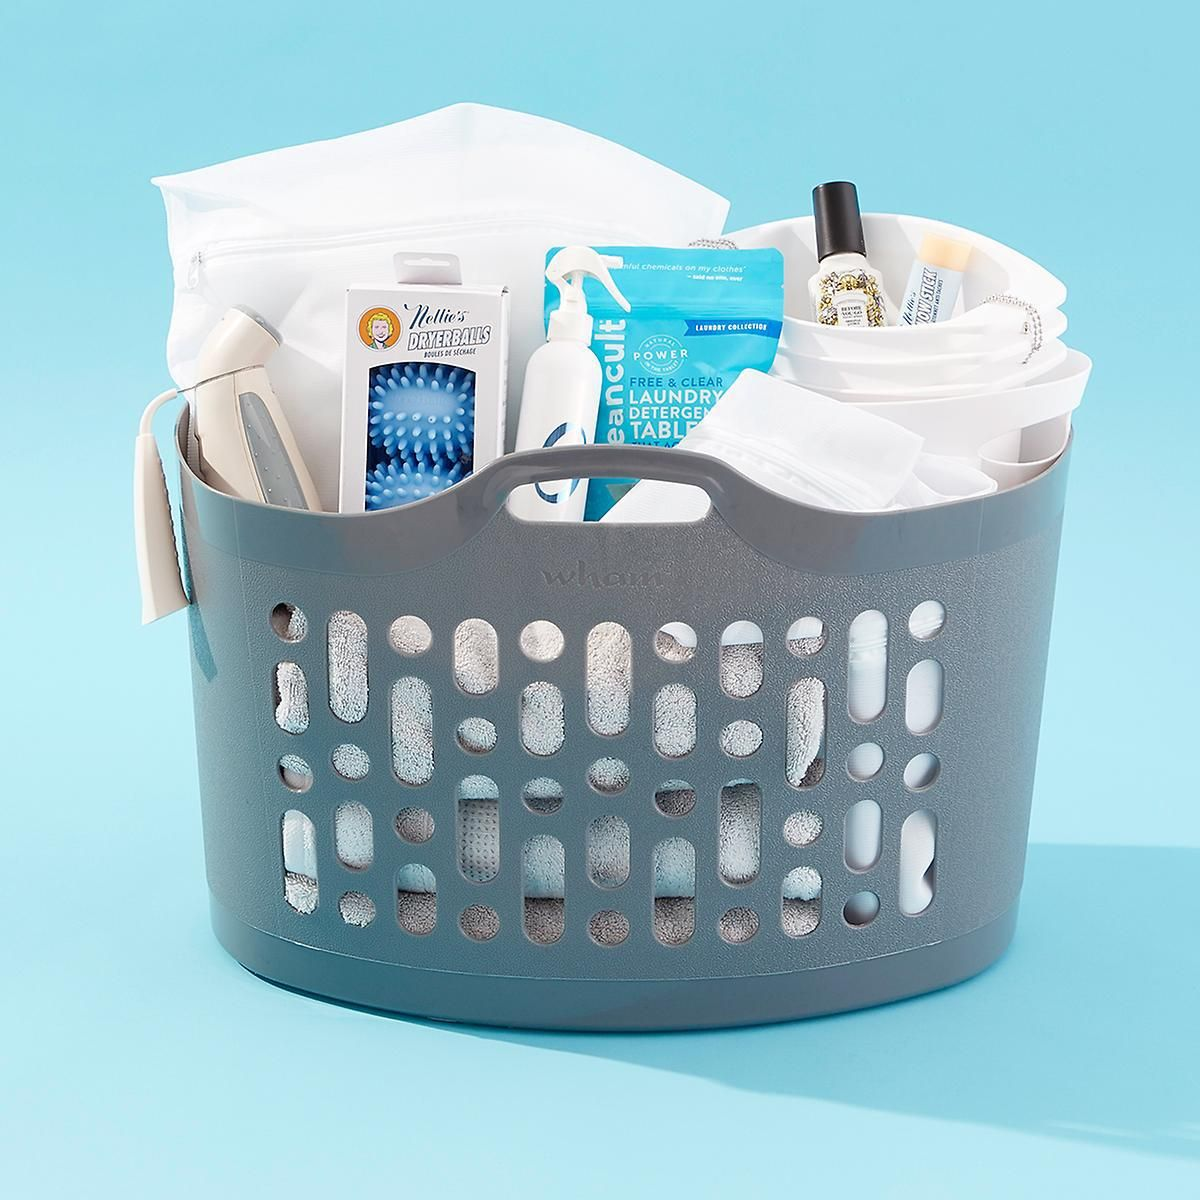 Laundry Essential Gift Basket For Grads And College Students Laundry Essentials Stackable Laundry Baskets Laundry Basket